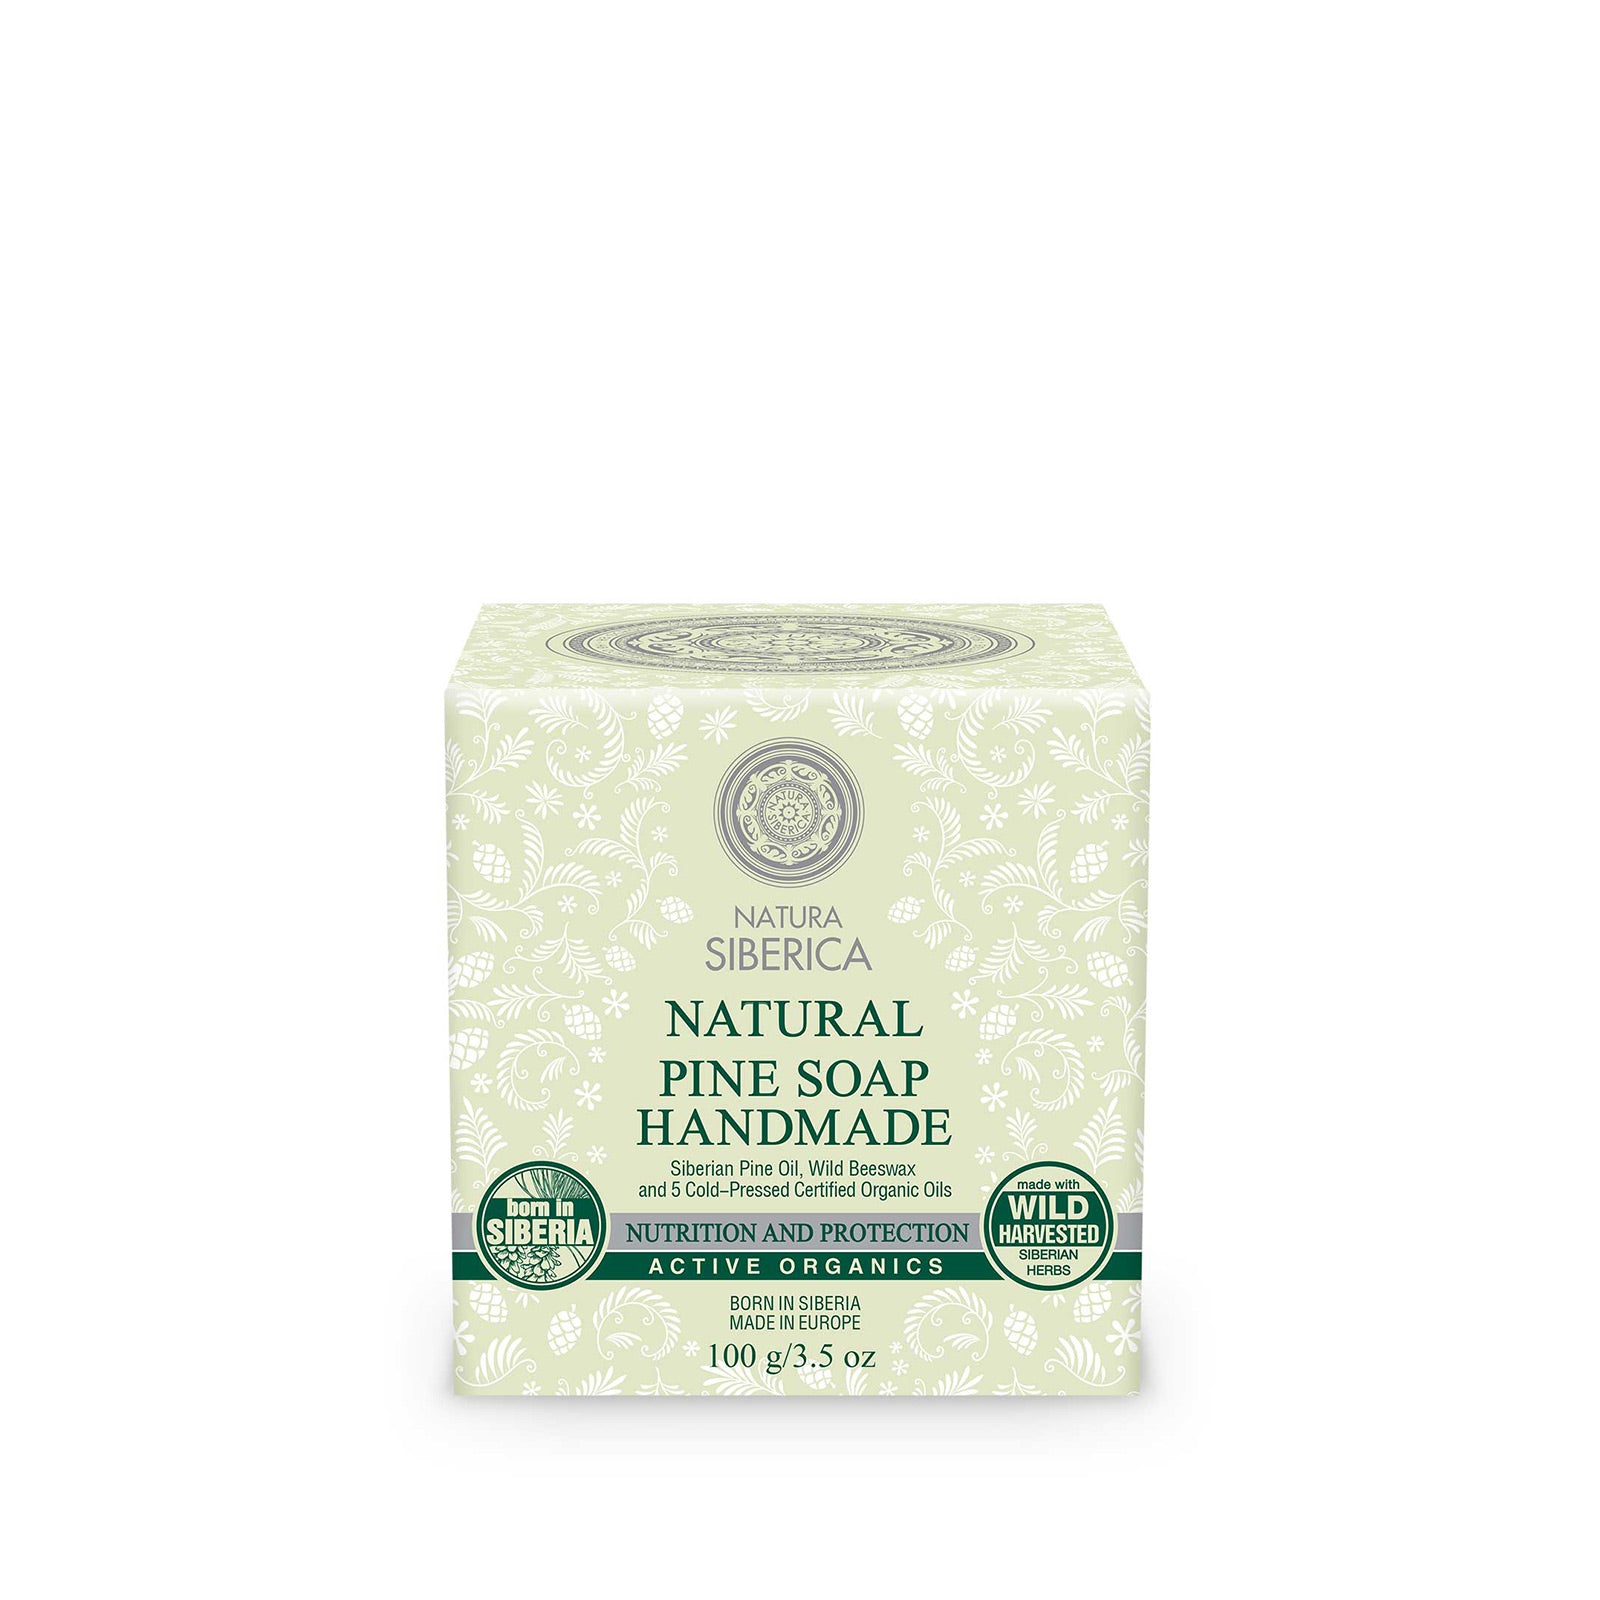 Handmade Natural Pine Soap, 100g